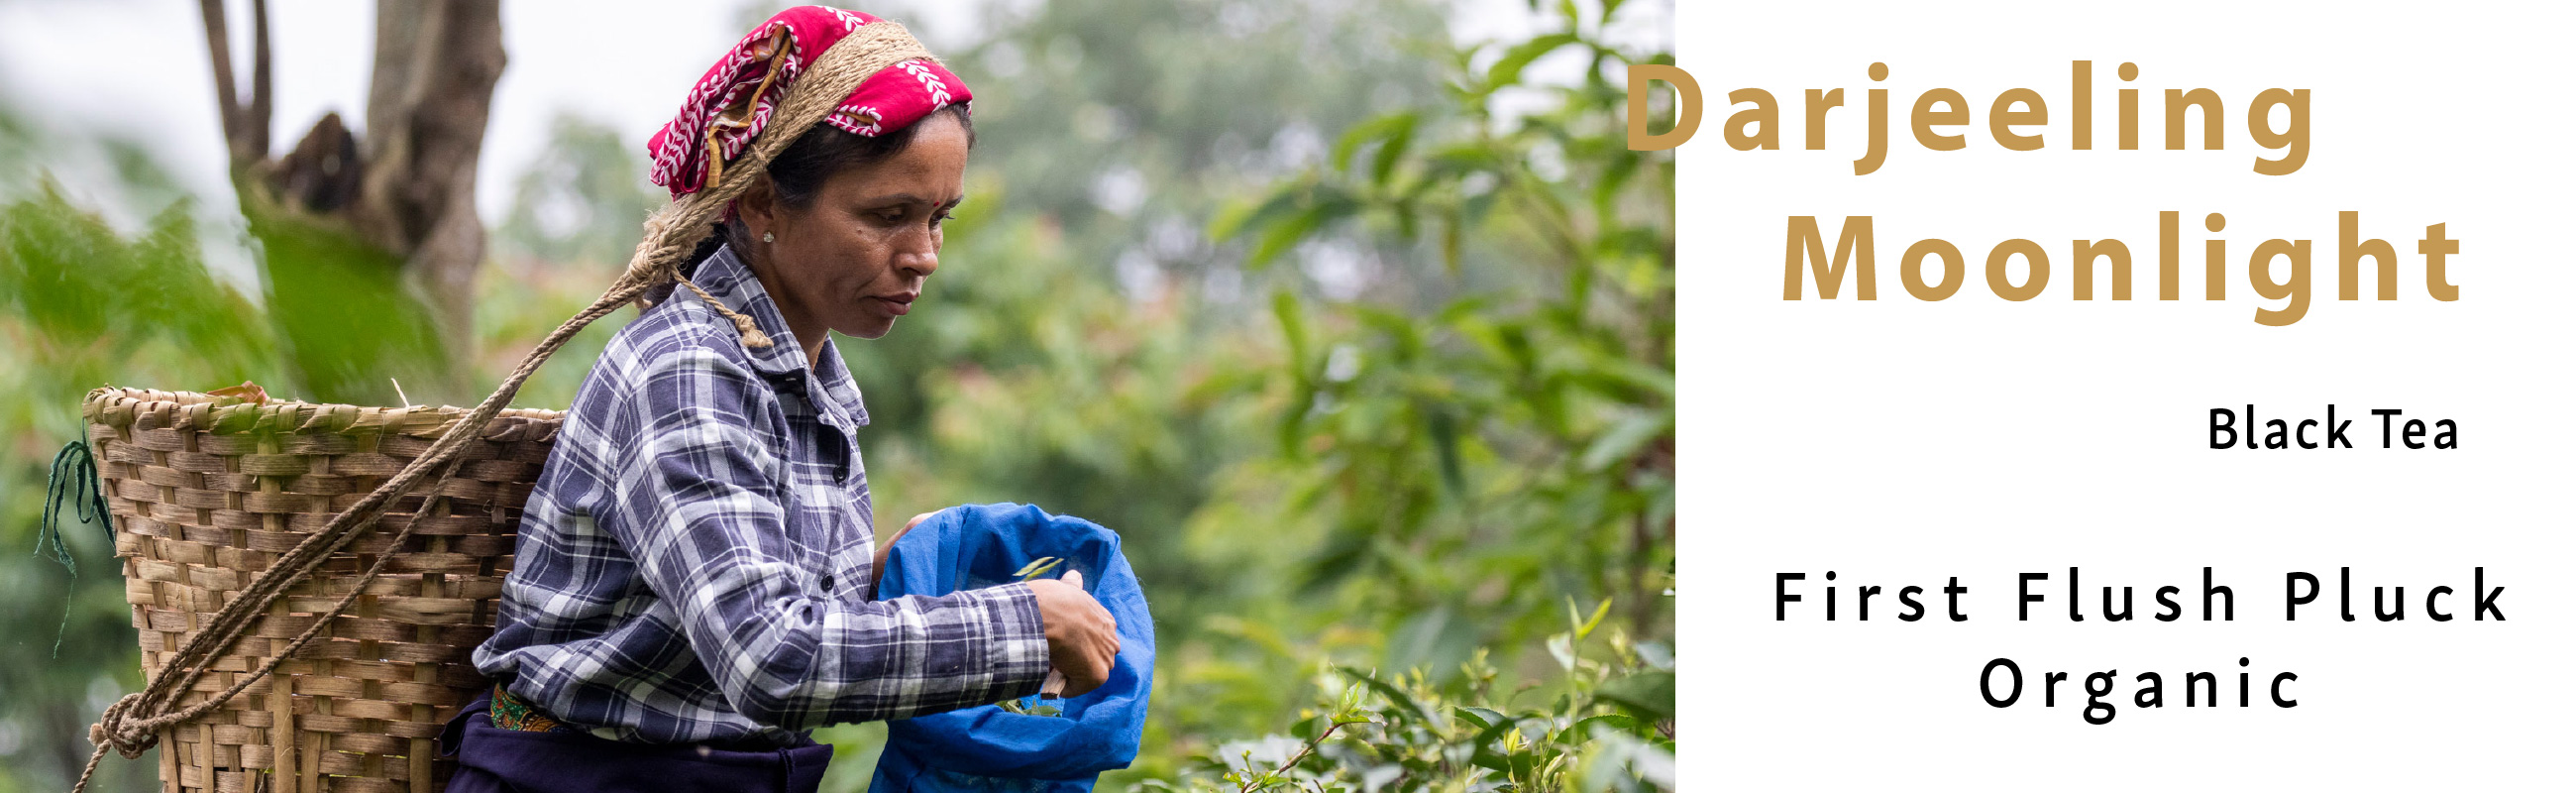 Darjeeling Tea Plucking